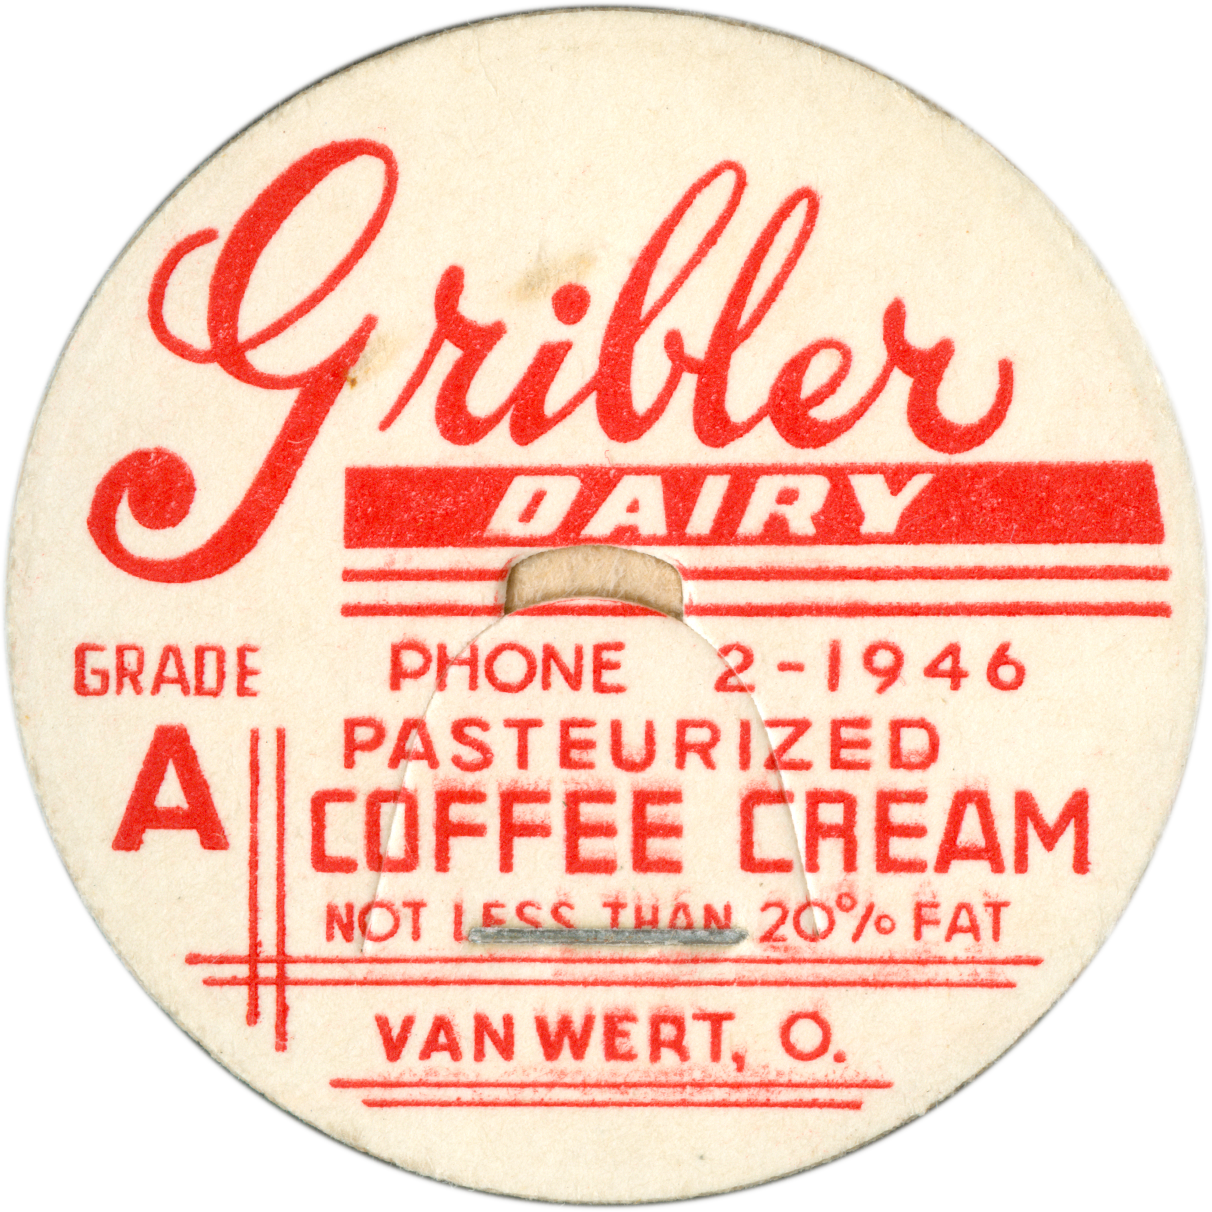 VernacularCircle__0000s_0006_Gribler-Dairy---Pastuerized-Coffee-Cream.png